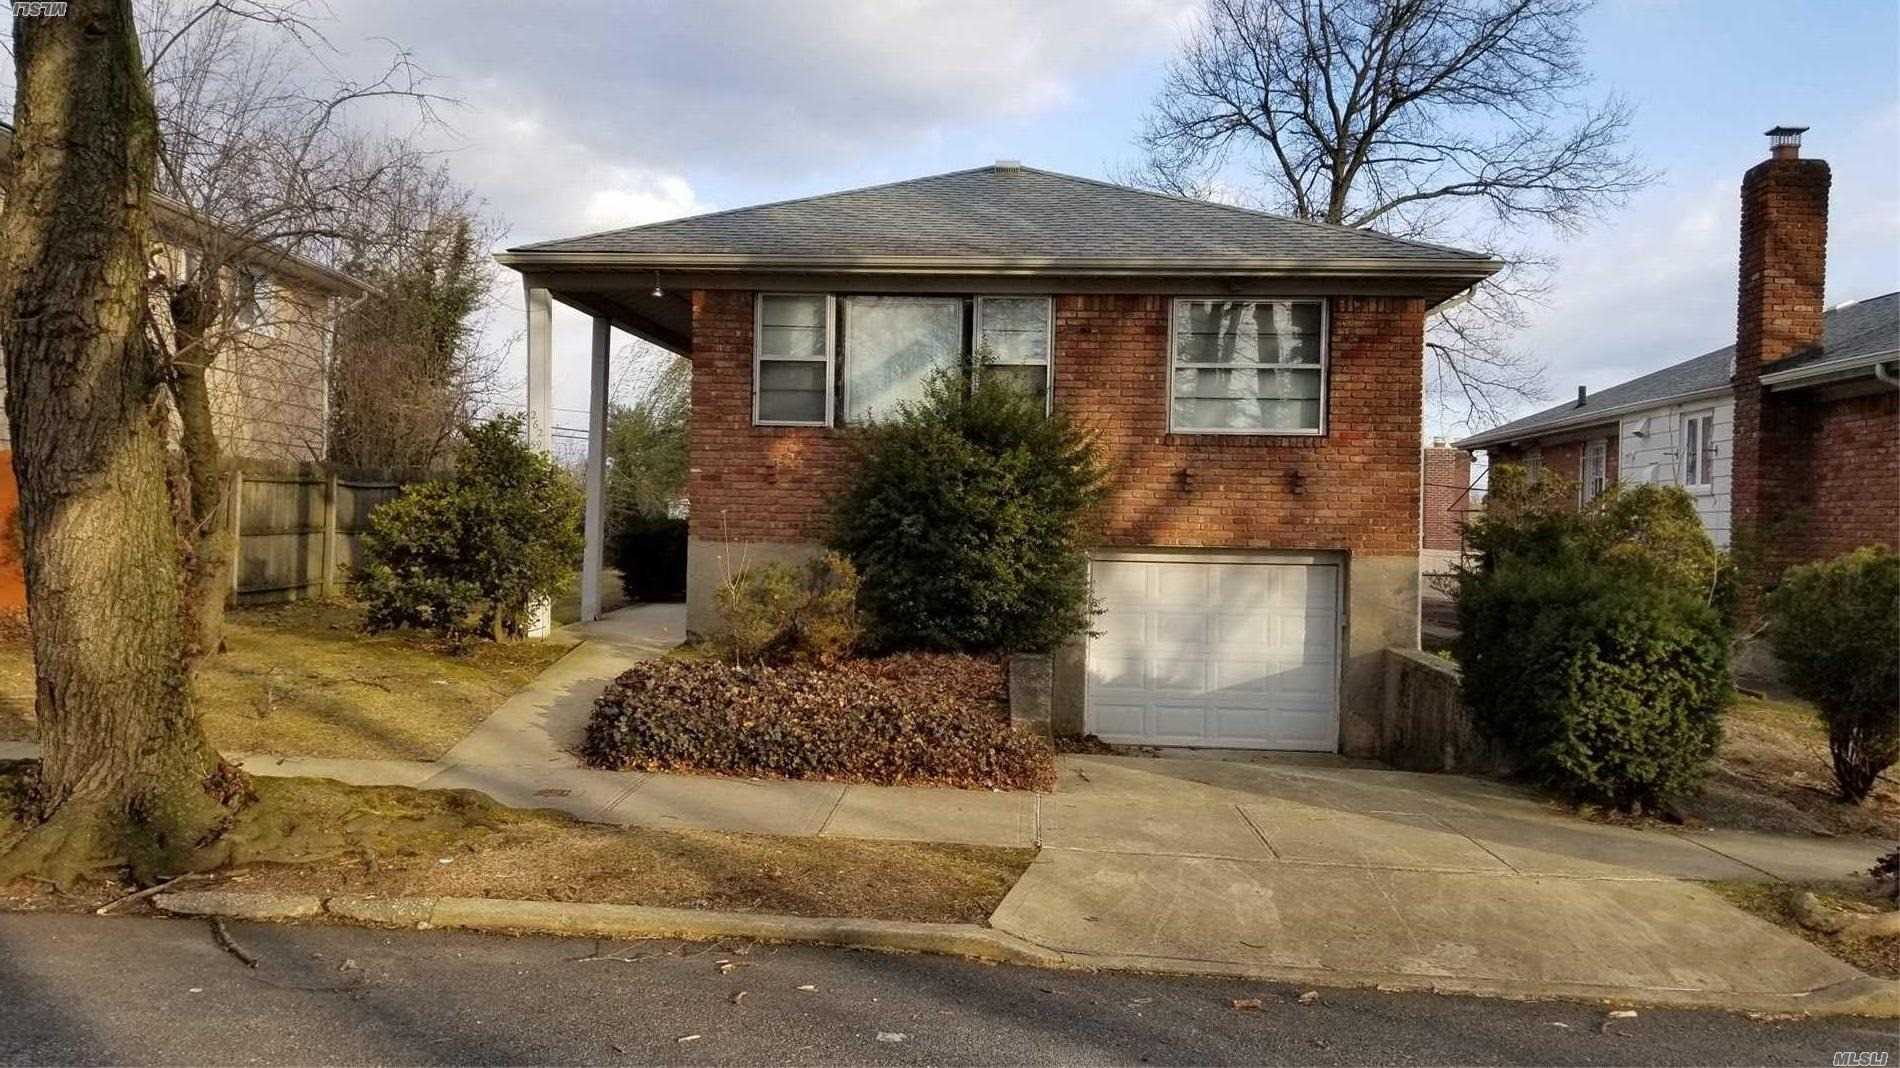 Spacious Brick Raised Ranch With Lots Of Potential Facing South Sunny With 3 Bds 2 Full Bths Full Basement Hard Wood Floors New Roof Large Private Yard Convenient Located Near Transportation And Shopping .Perfect For Some One Looking To Renovate And Add Their Personal Touch.